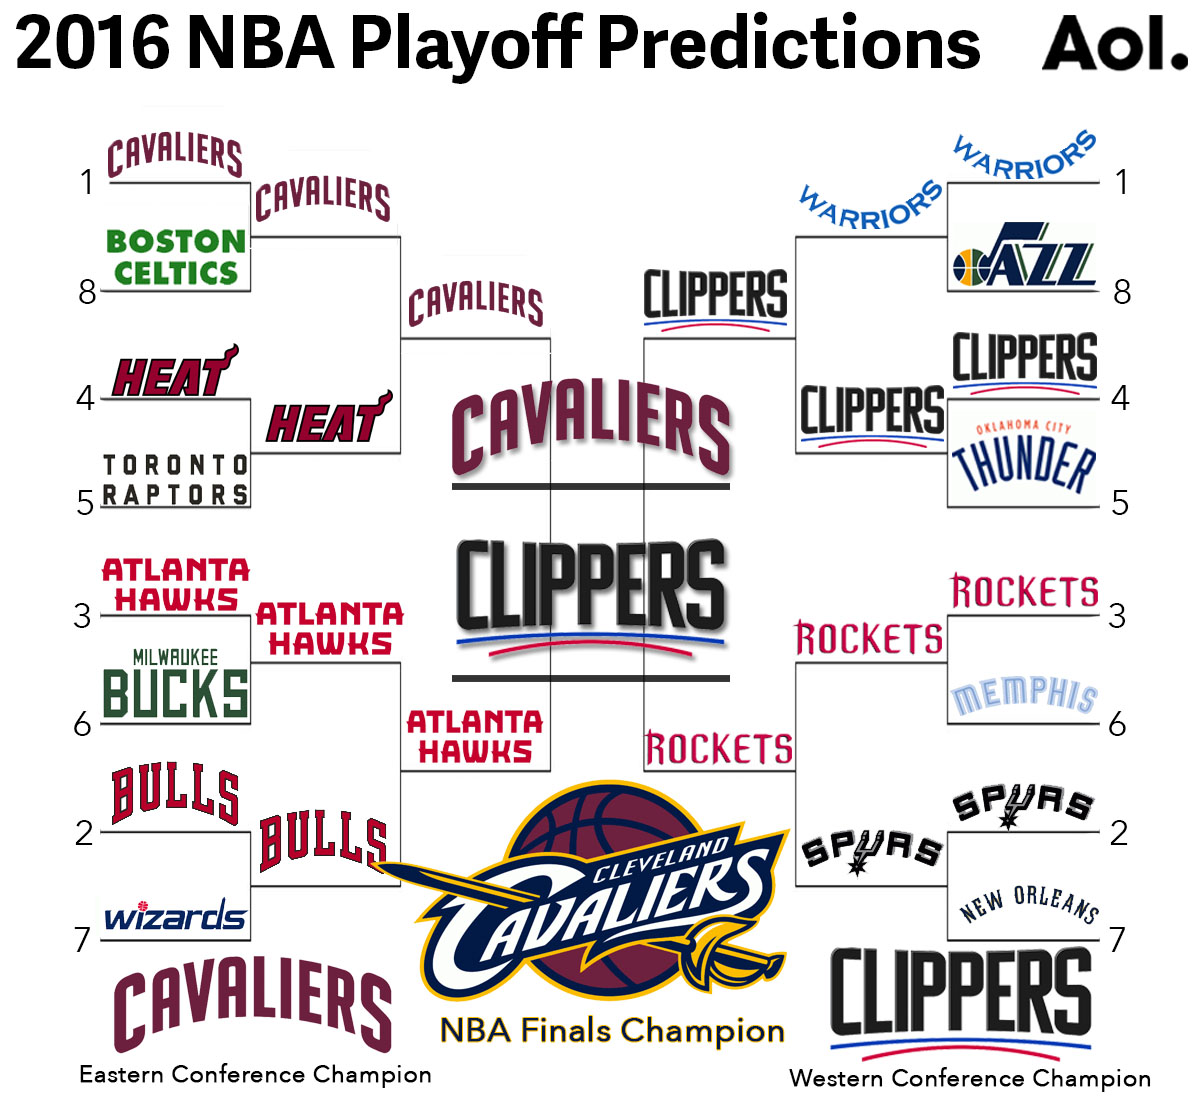 NBA Tipoff: 2015-16 preview and predictions - AOL News